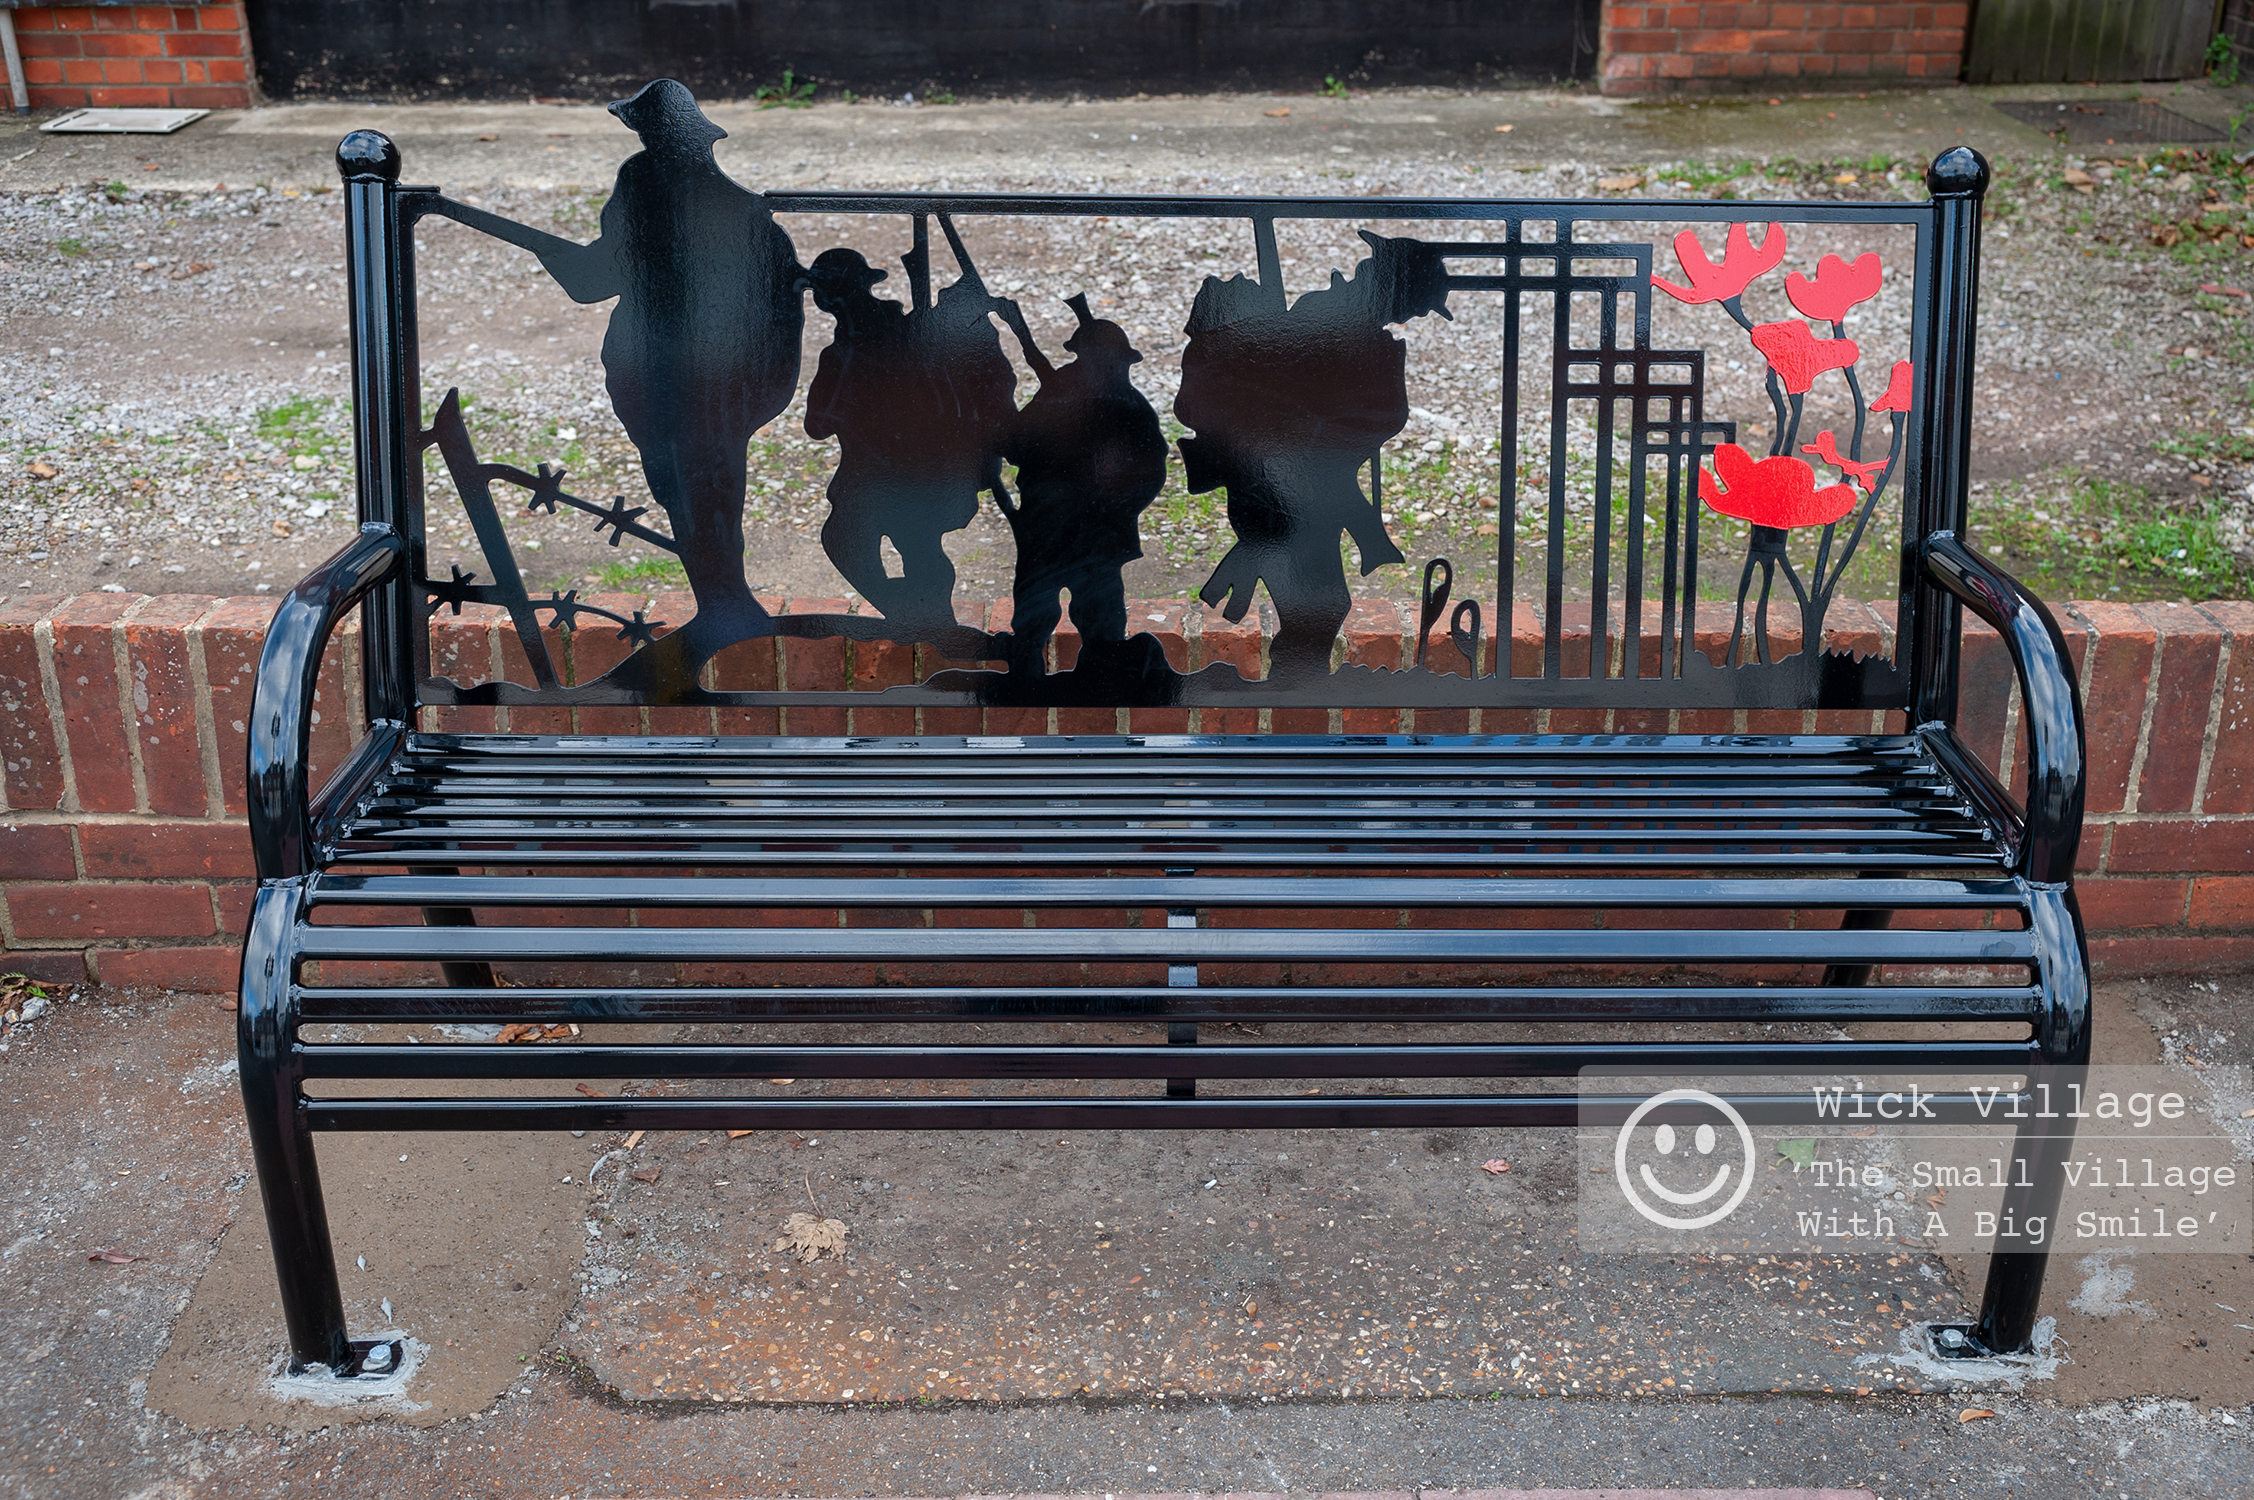 Wick, Littlehampton, West Sussex, UK. 9th November 2018. The Wick Village Traders Association have funded a new bench in Wick Village to mark the centenary of the end of the First World War. In Pic: The new bench on Wick Street.